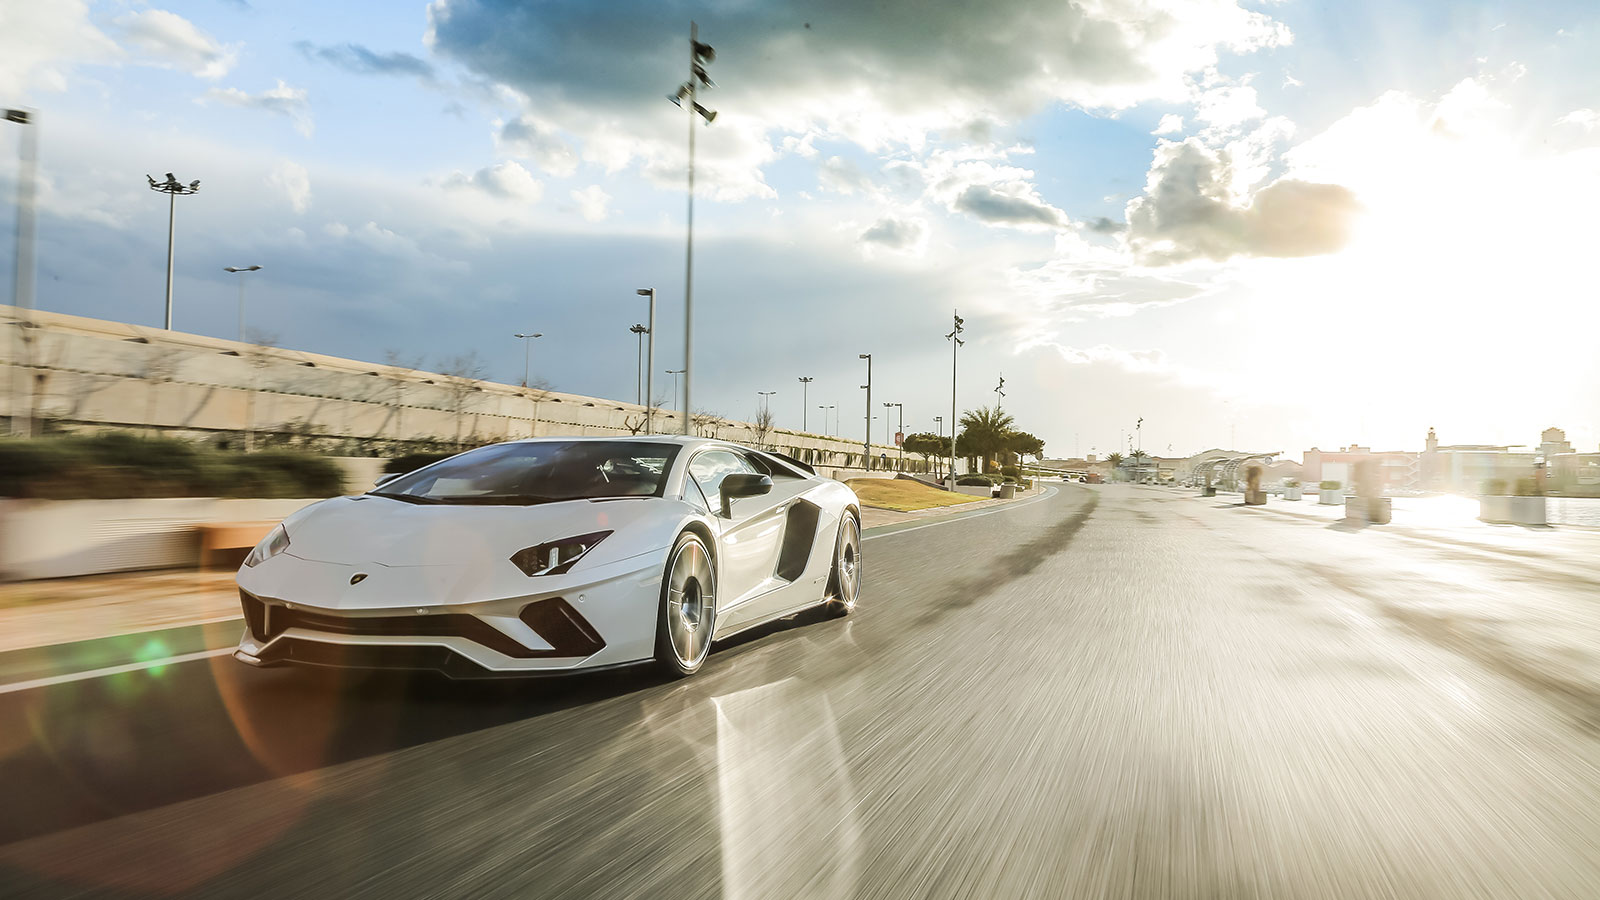 Lamborghini Aventador S Coupe - The Icon Reborn image 17